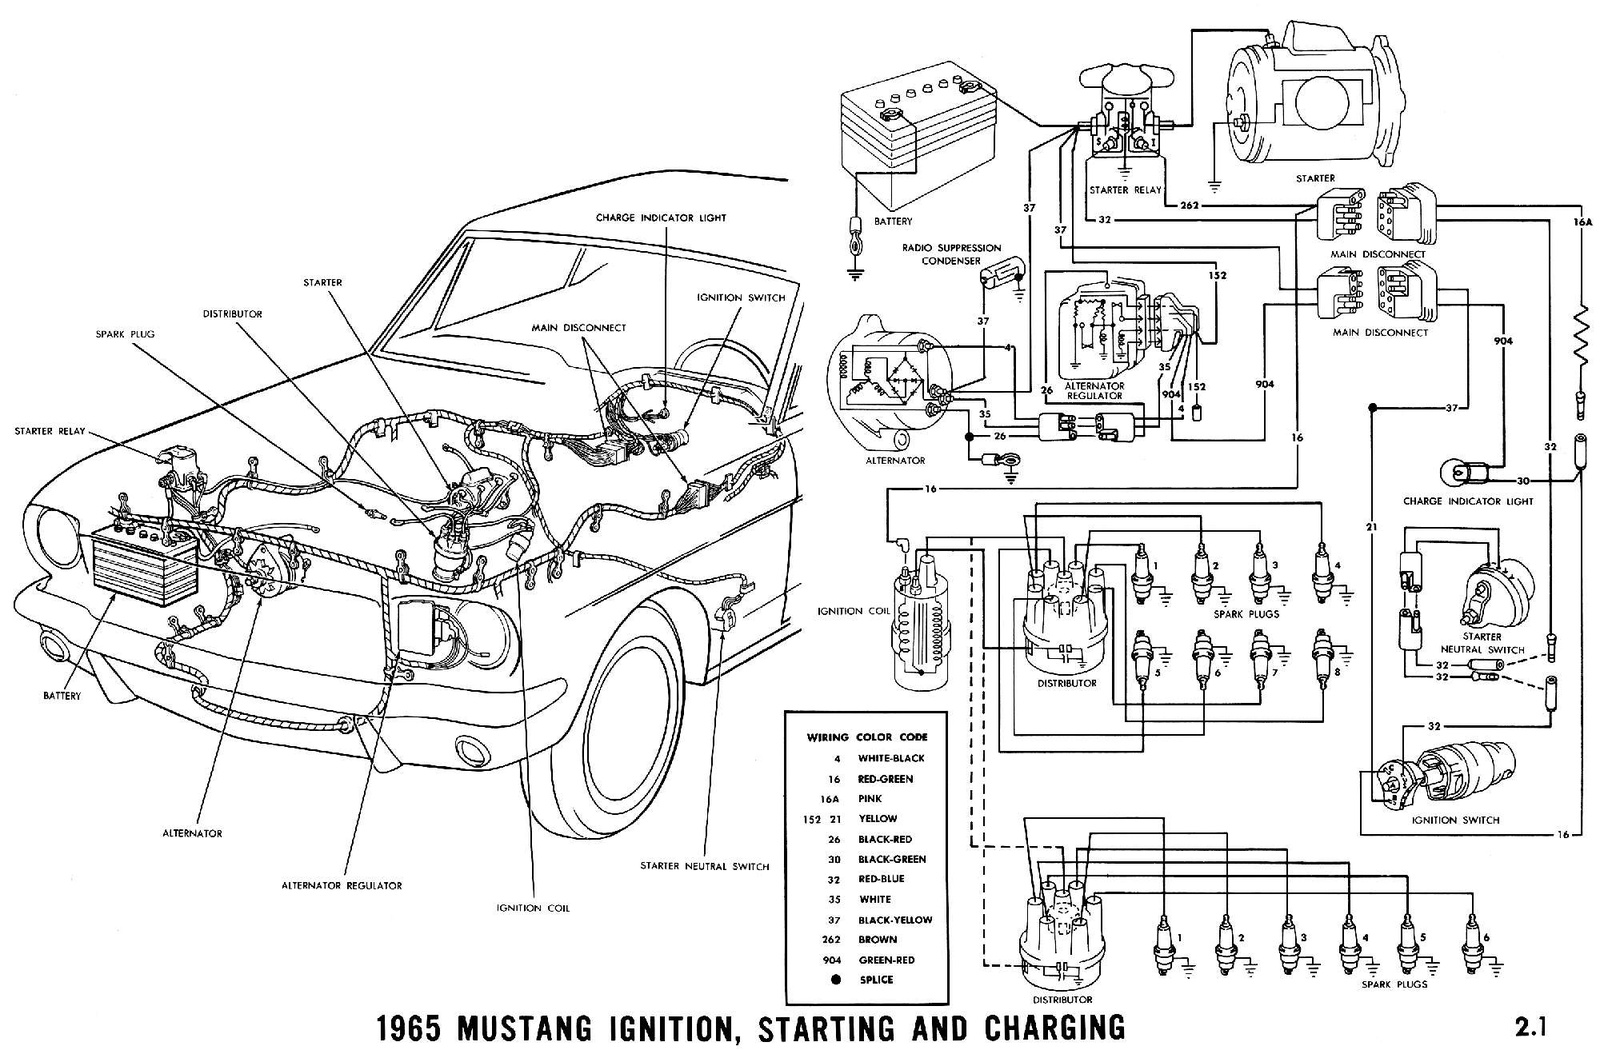 66 mustang wiring diagram complete wiring diagrams u2022 rh sammich co 66  Mustang Engine Wiring Diagram 66 Mustang Wiper Wiring Diagram